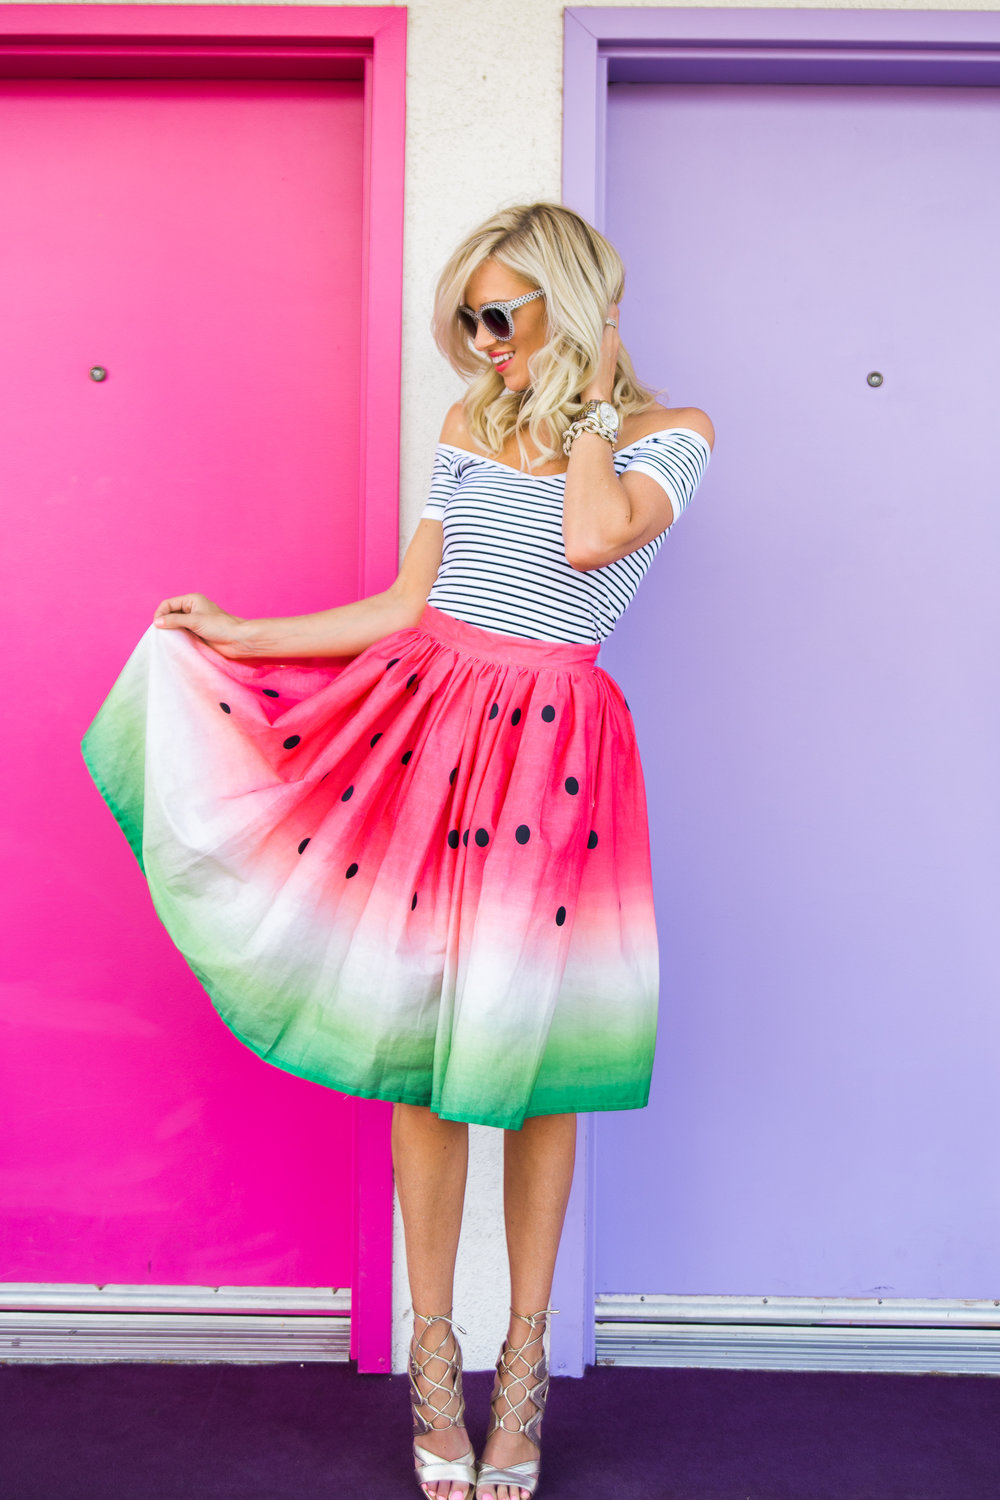 Watermelon Skirt - Styled by: Mckenna Bleu